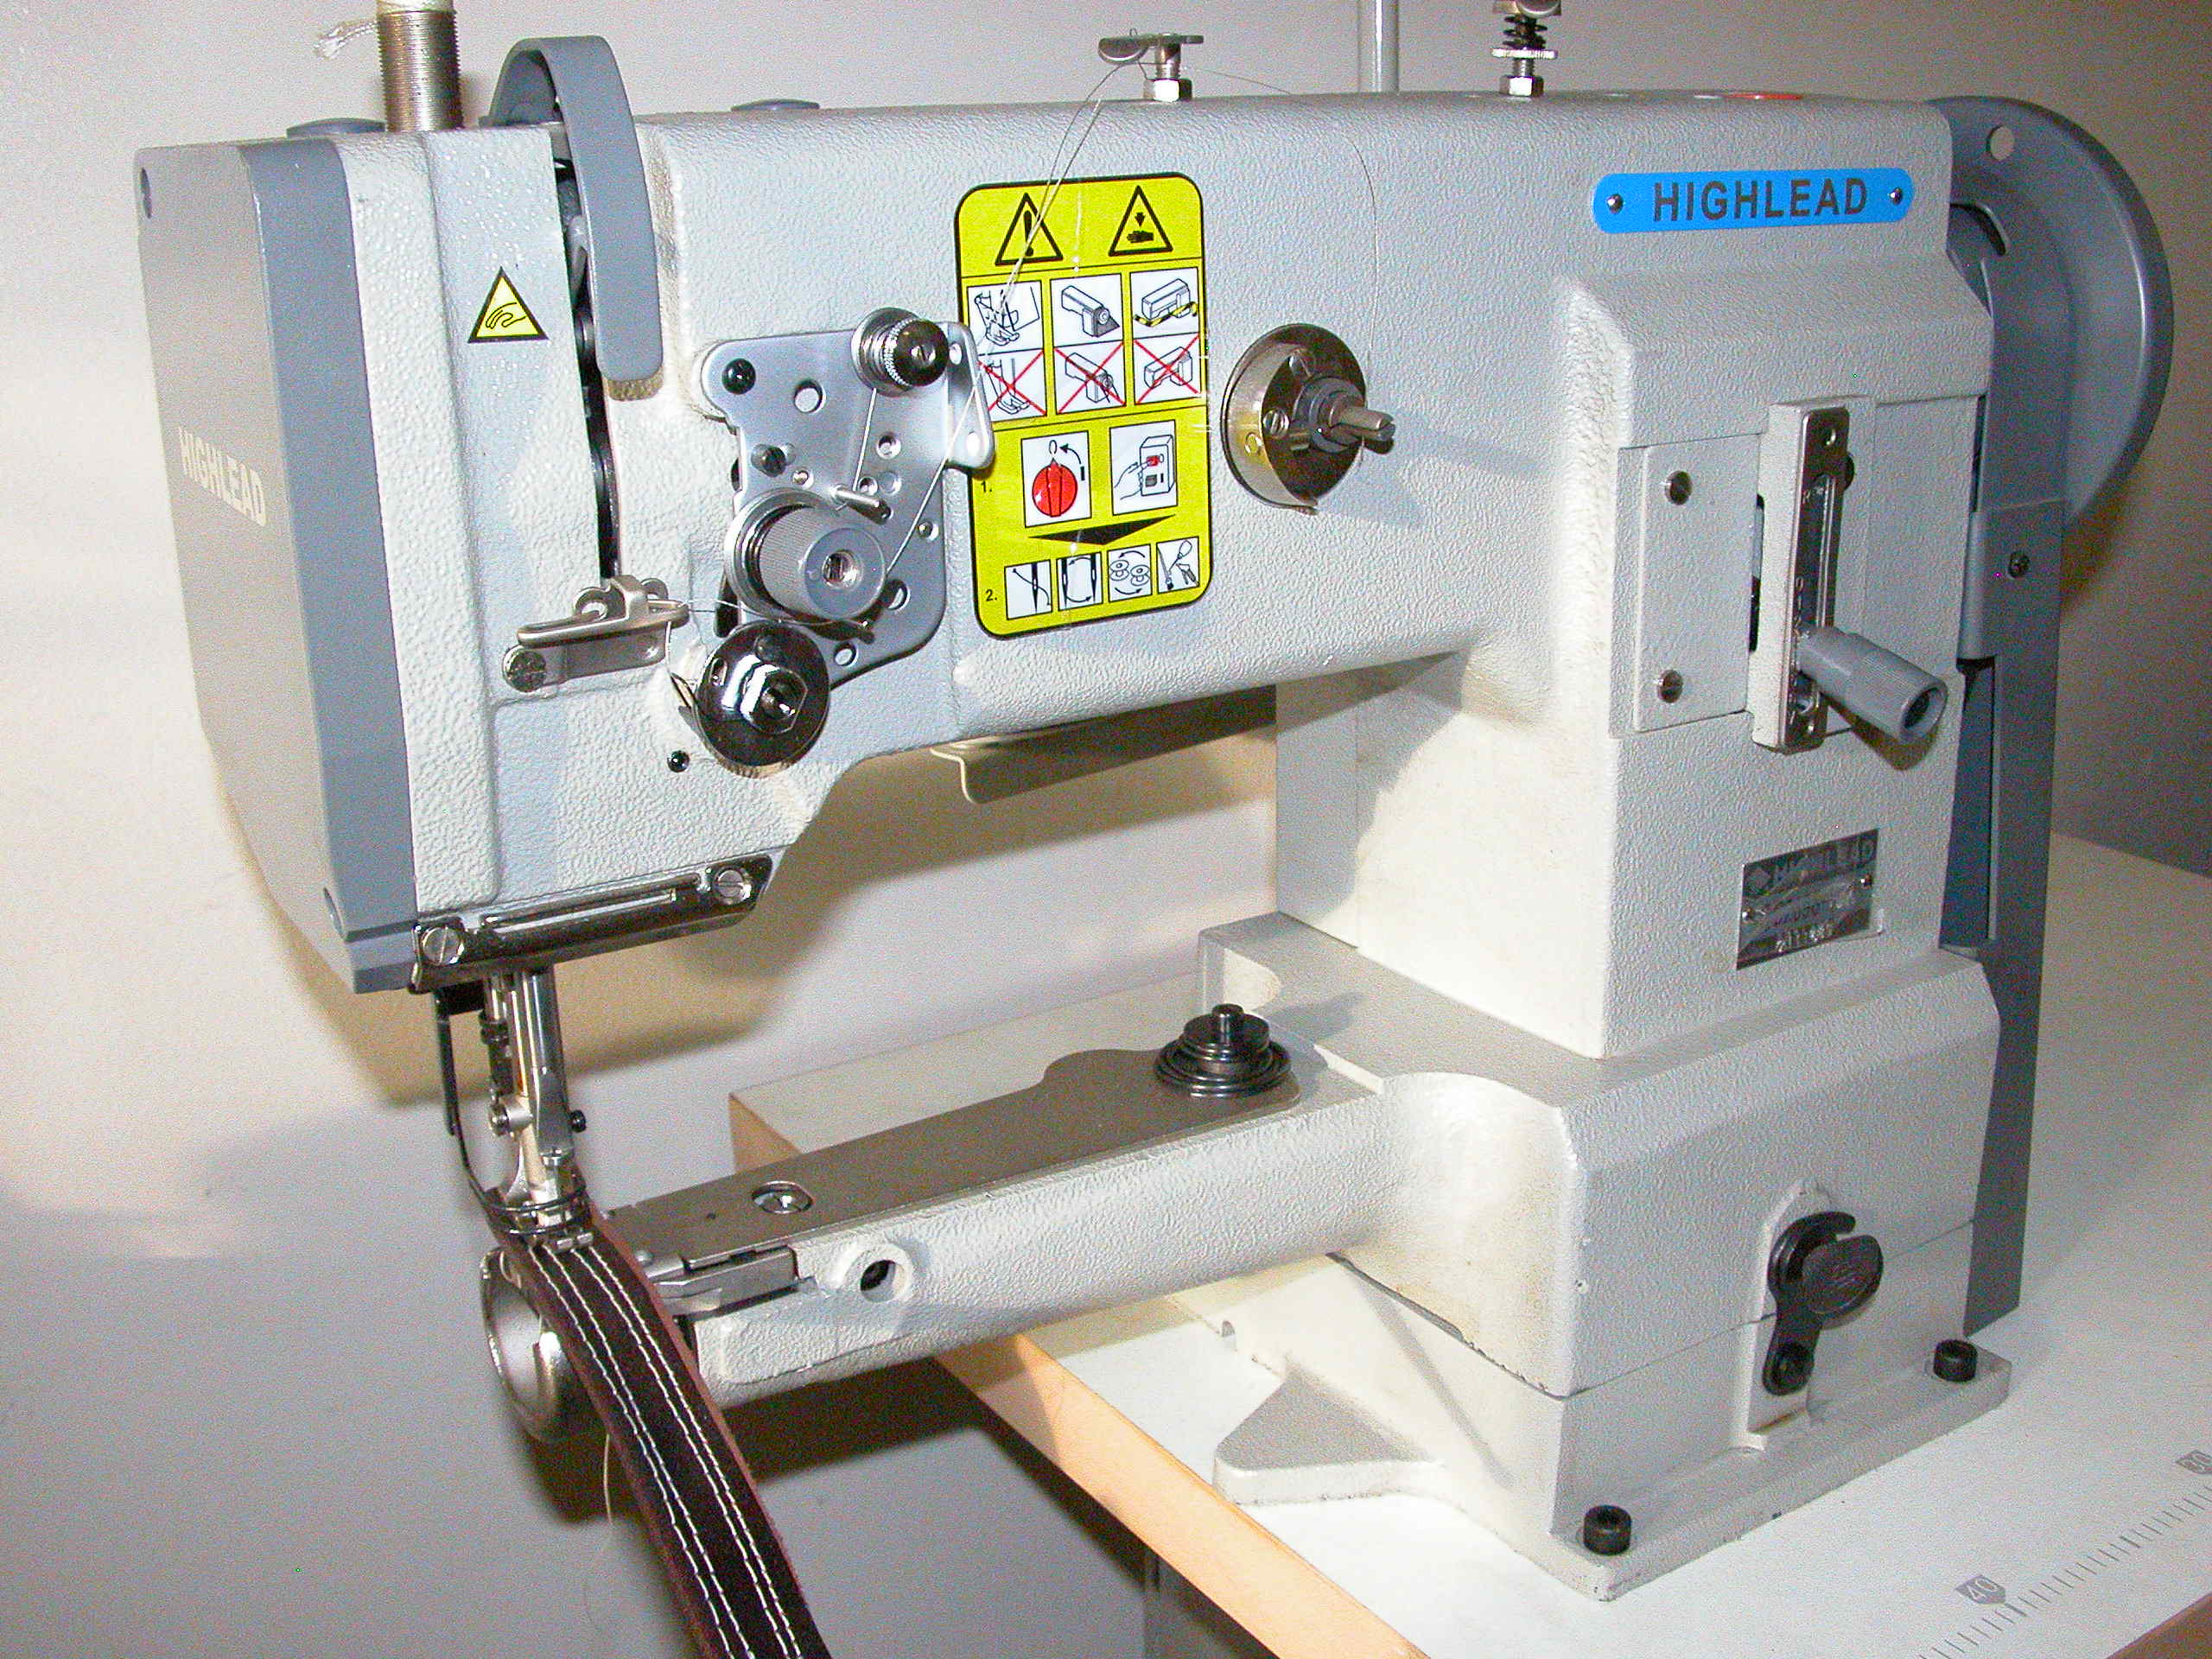 Highlead GC2698 Sewing Machine